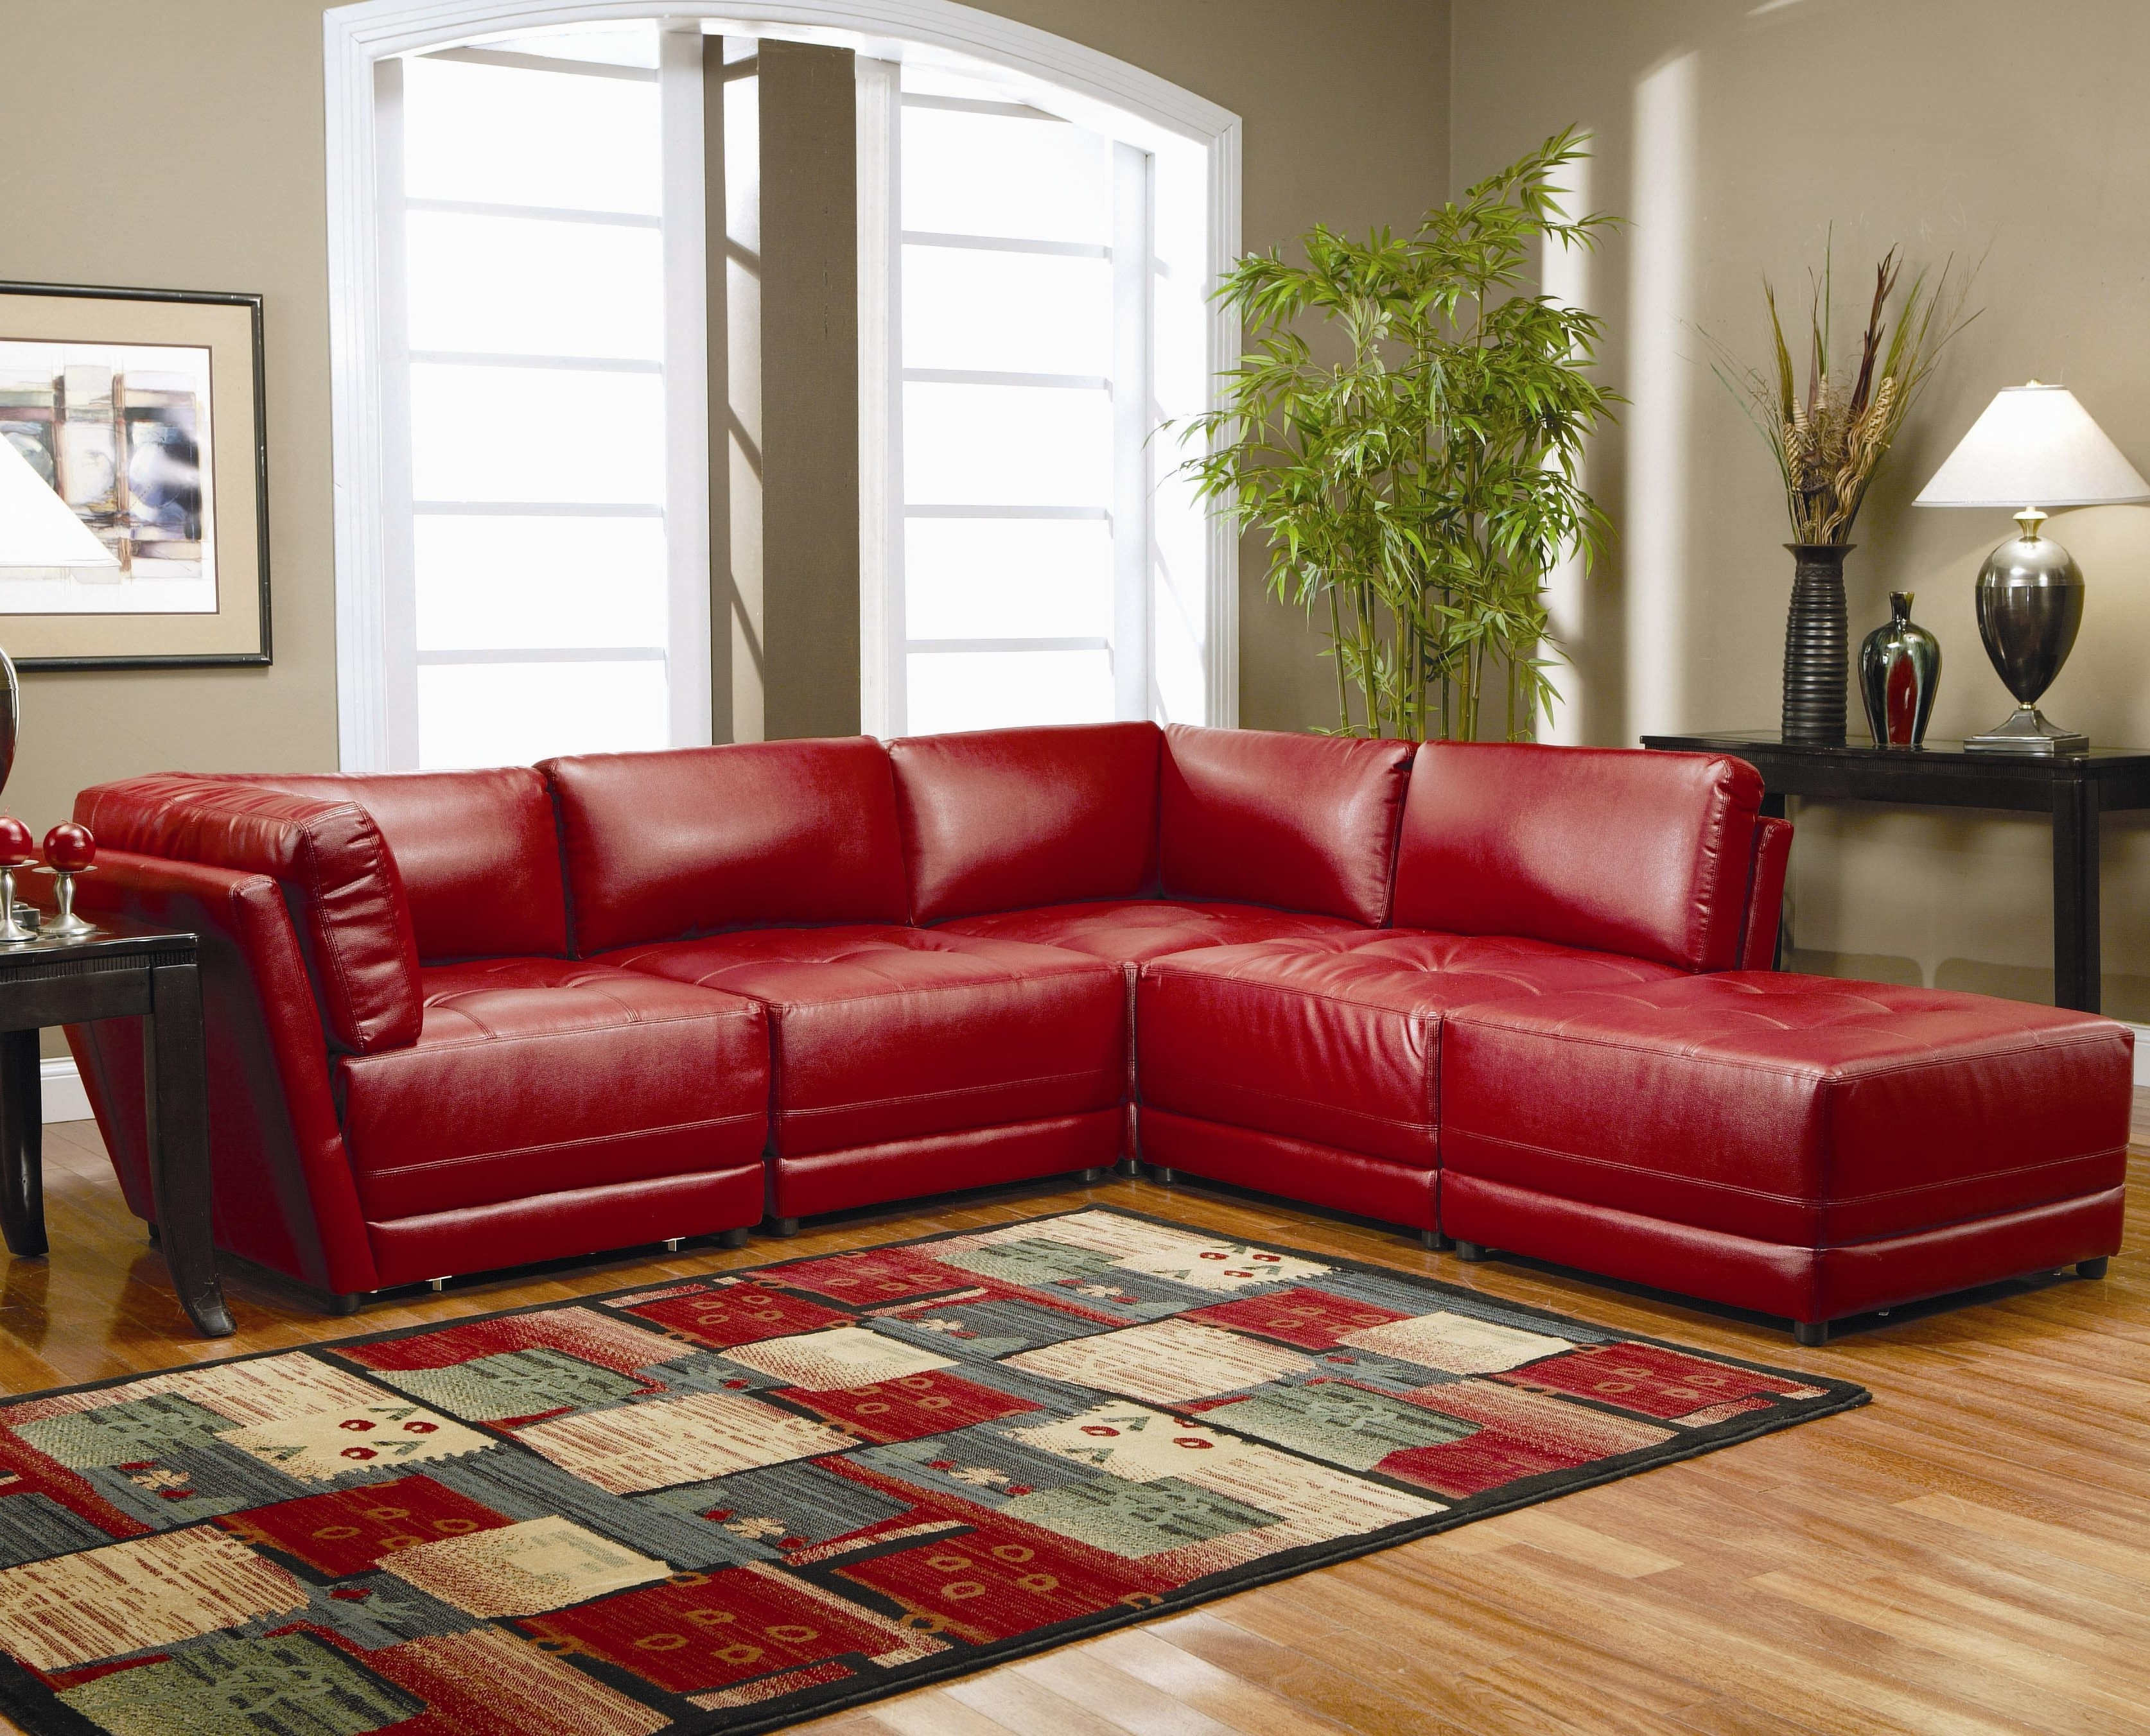 Red Faux Leather Sectionals Inside Most Up To Date Warm Red Leather Sectional L Shaped Sofa Design Ideas For Living (View 11 of 20)